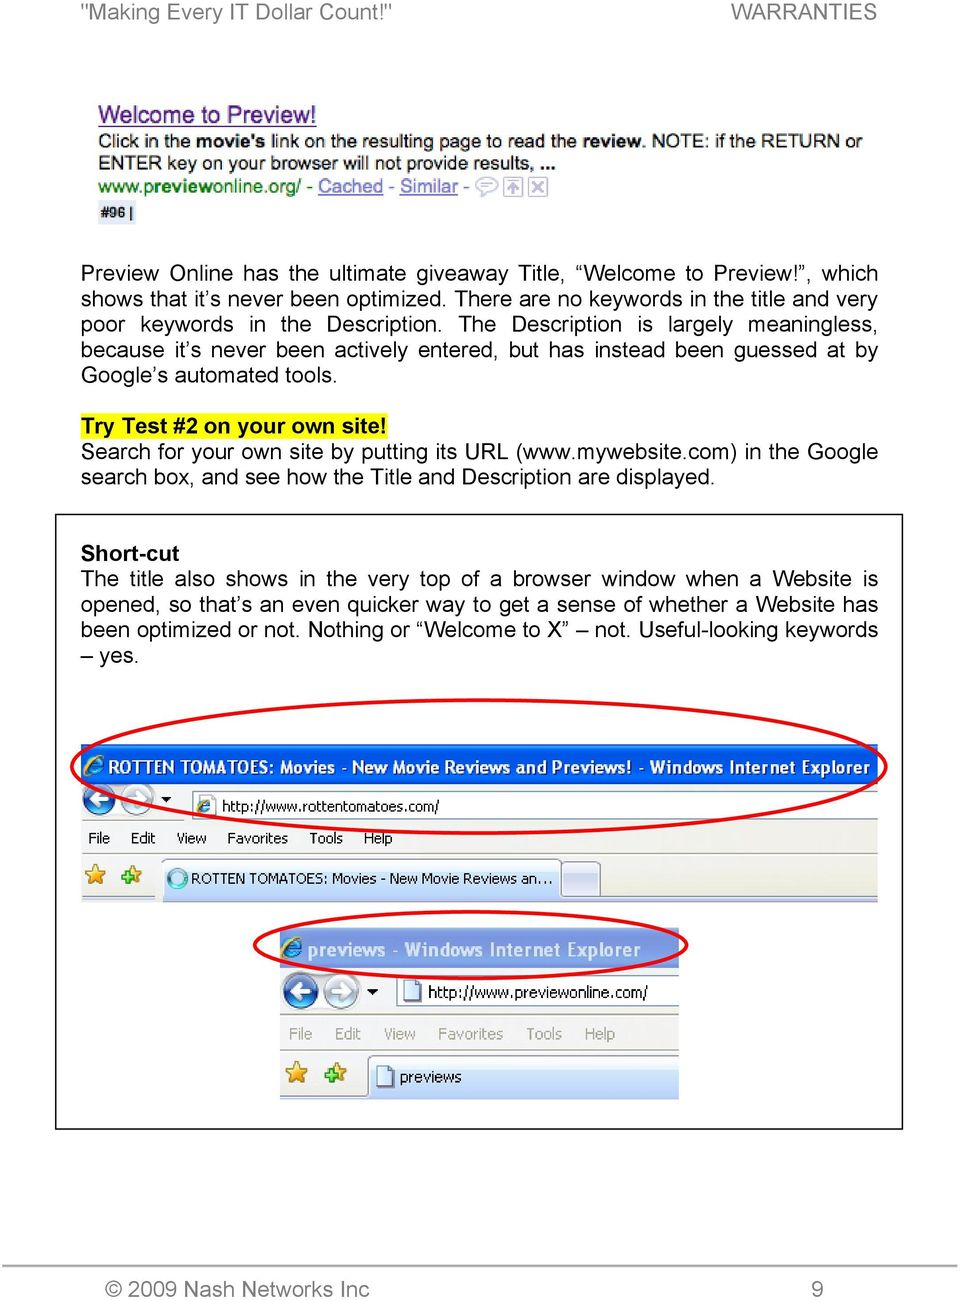 Search for your own site by putting its URL (www.mywebsite.com) in the Google search box, and see how the Title and Description are displayed.